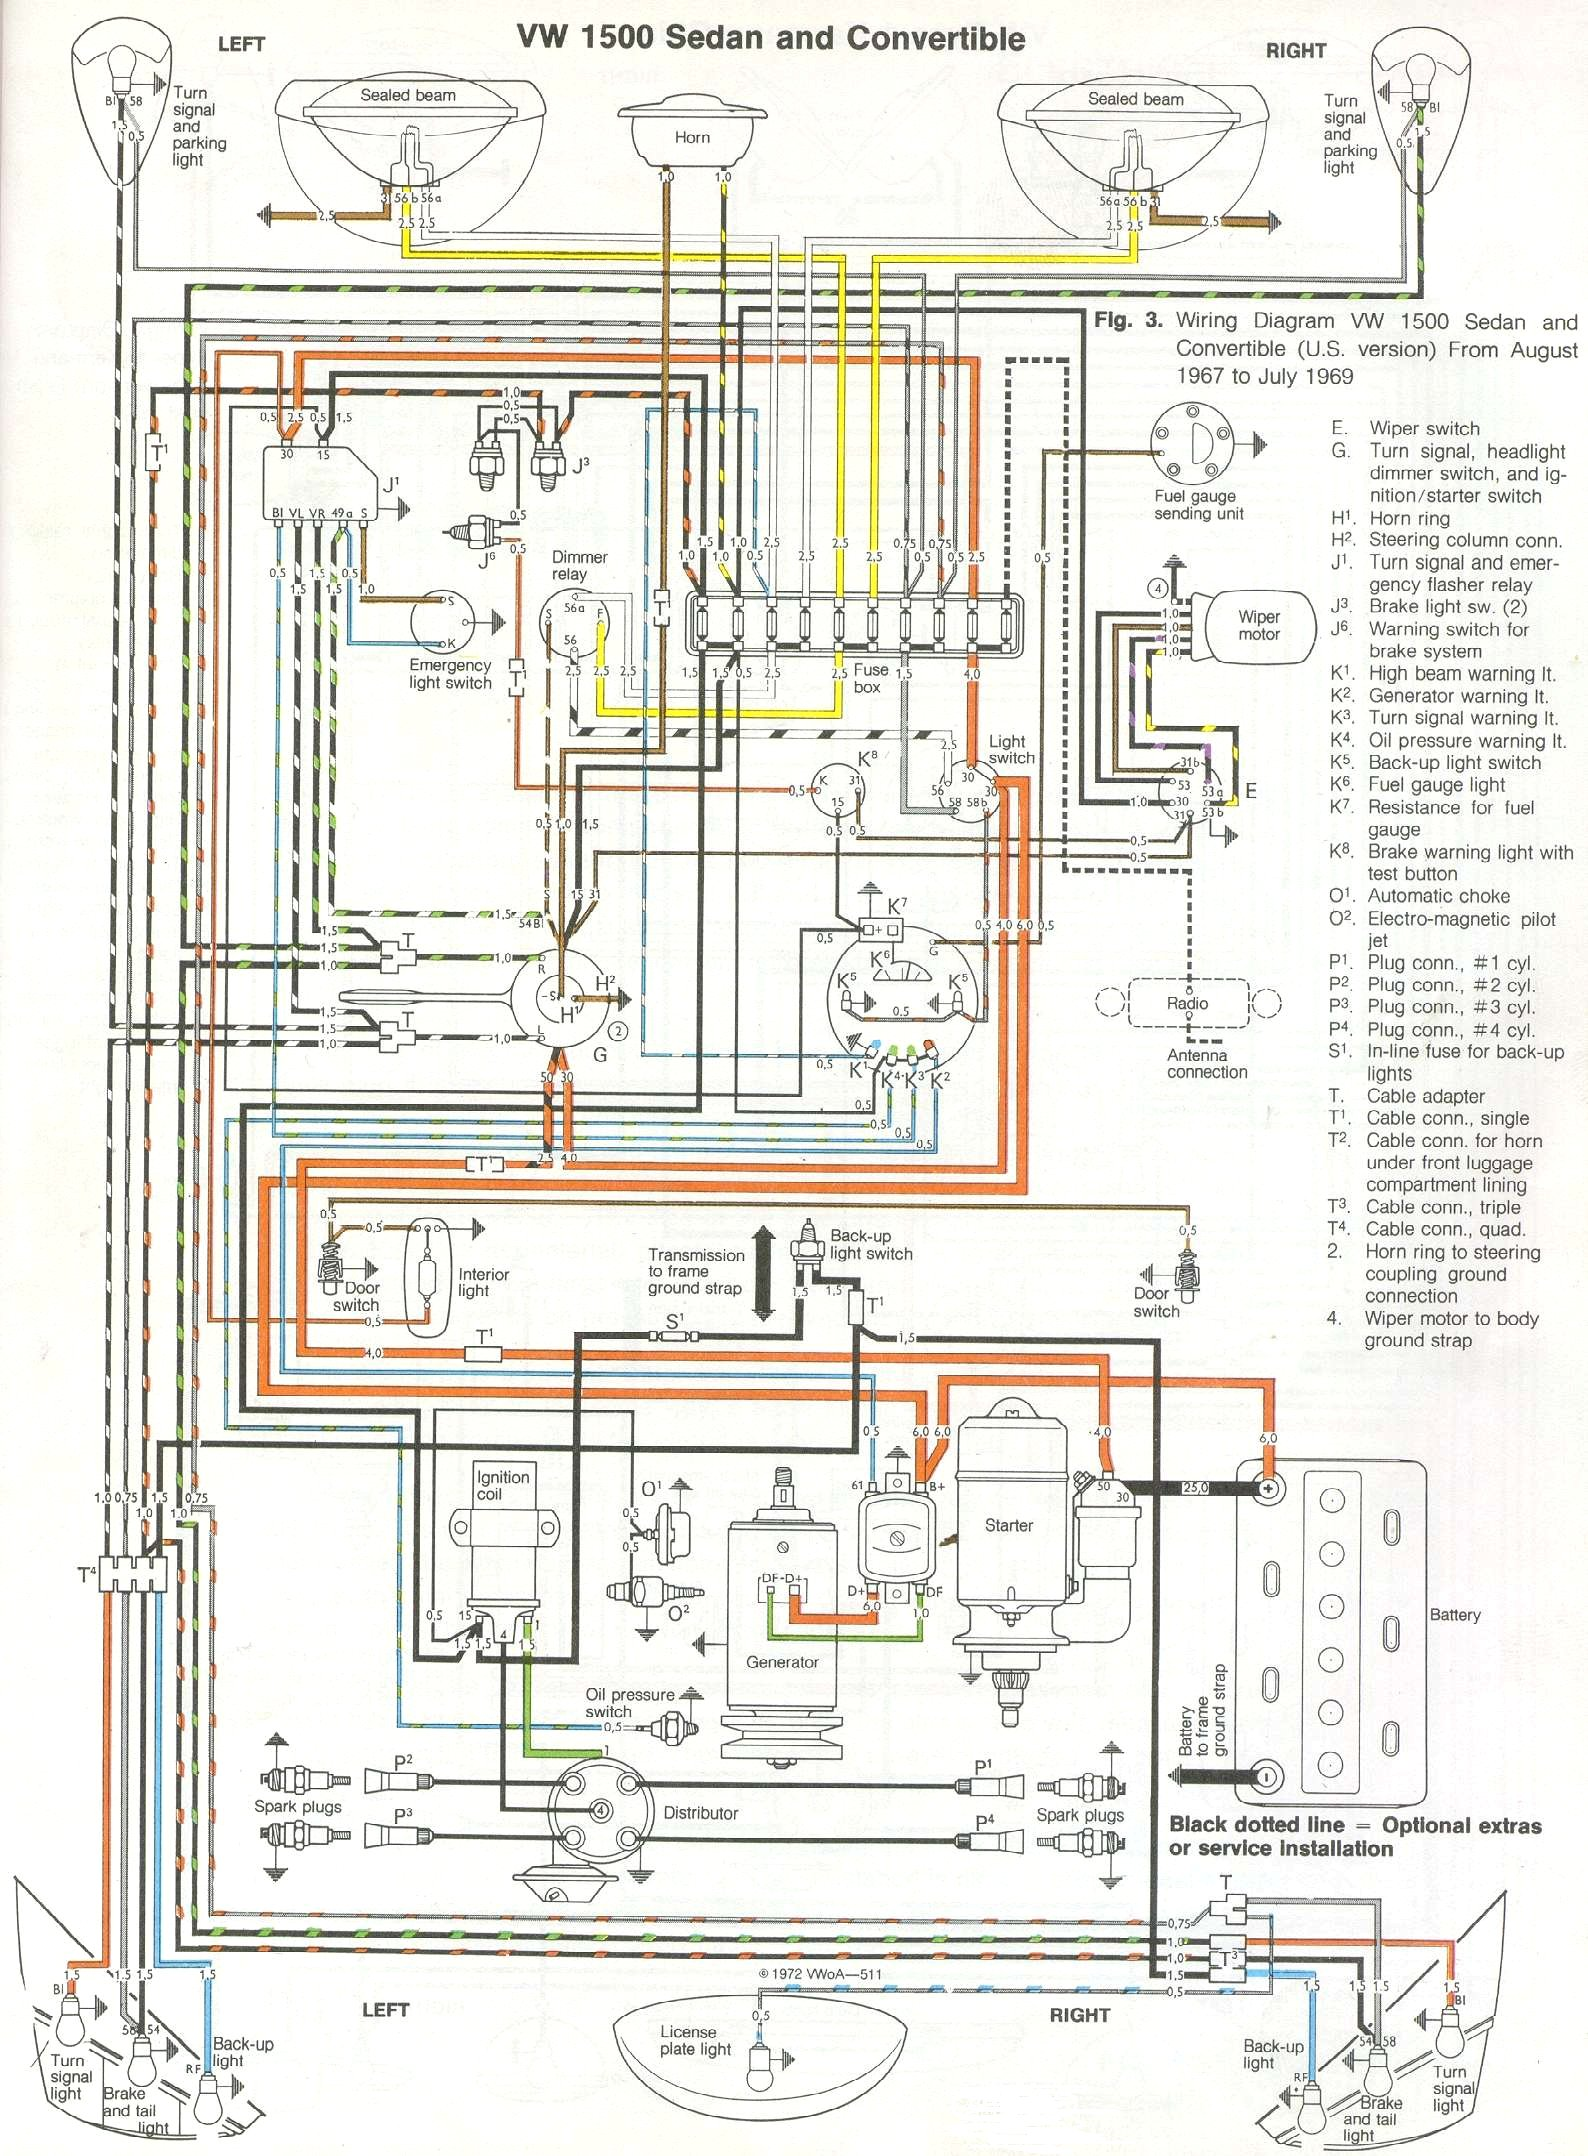 Volkswagen bug wiring diagram free download wiring diagrams 1969 71 beetle wiring diagram thegoldenbug com for vw engine wiring diagram evo x wiring diagram cheapraybanclubmaster